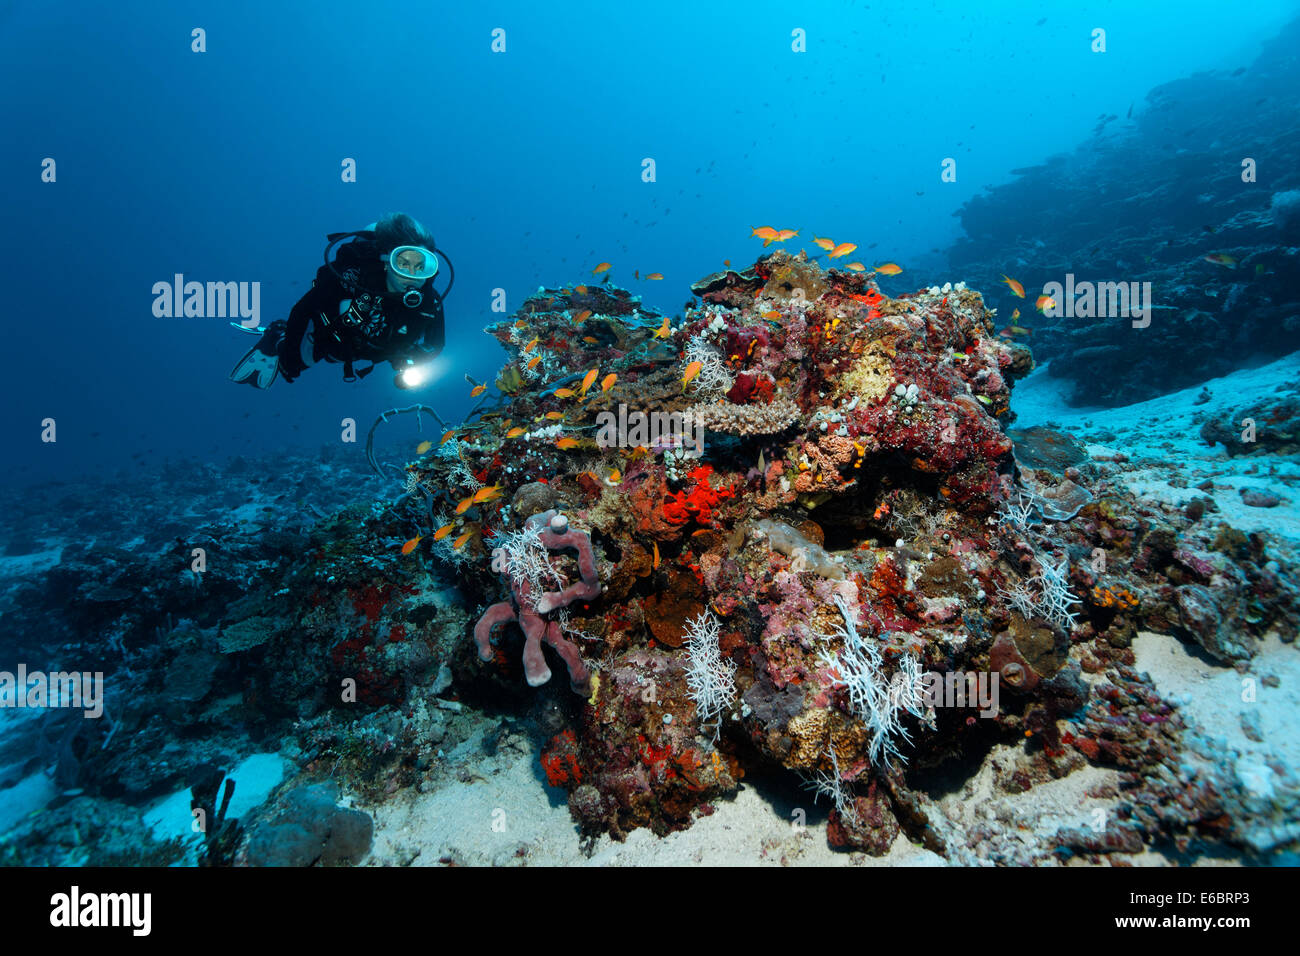 Diver looking at coral block with different corals and sponges, shoal of Anthias (Anthiinae), Indian Ocean, Bolifushi - Stock Image